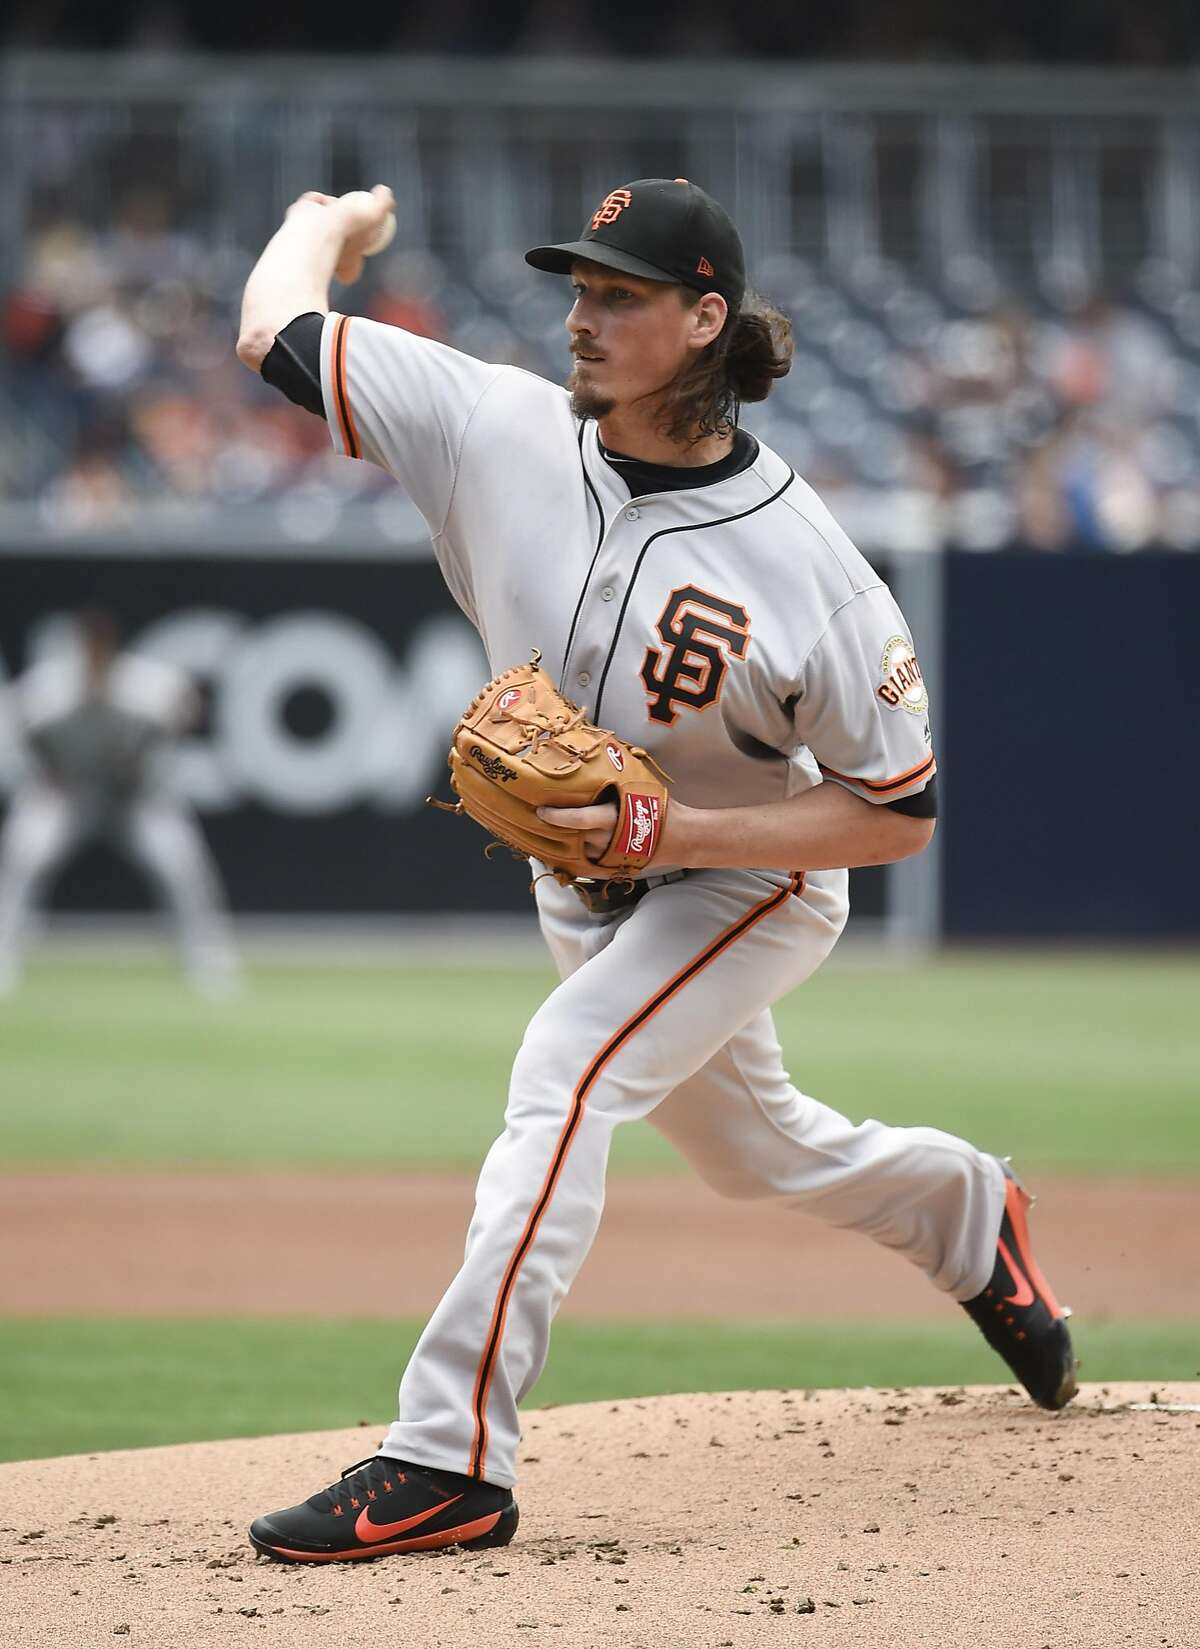 SAN DIEGO, CA - JULY 16: Jeff Samardzija #29 of the San Francisco Giants pitches during the first inning of a baseball game against the San Diego Padres at PETCO Park on July 16, 2017 in San Diego, California. (Photo by Denis Poroy/Getty Images)